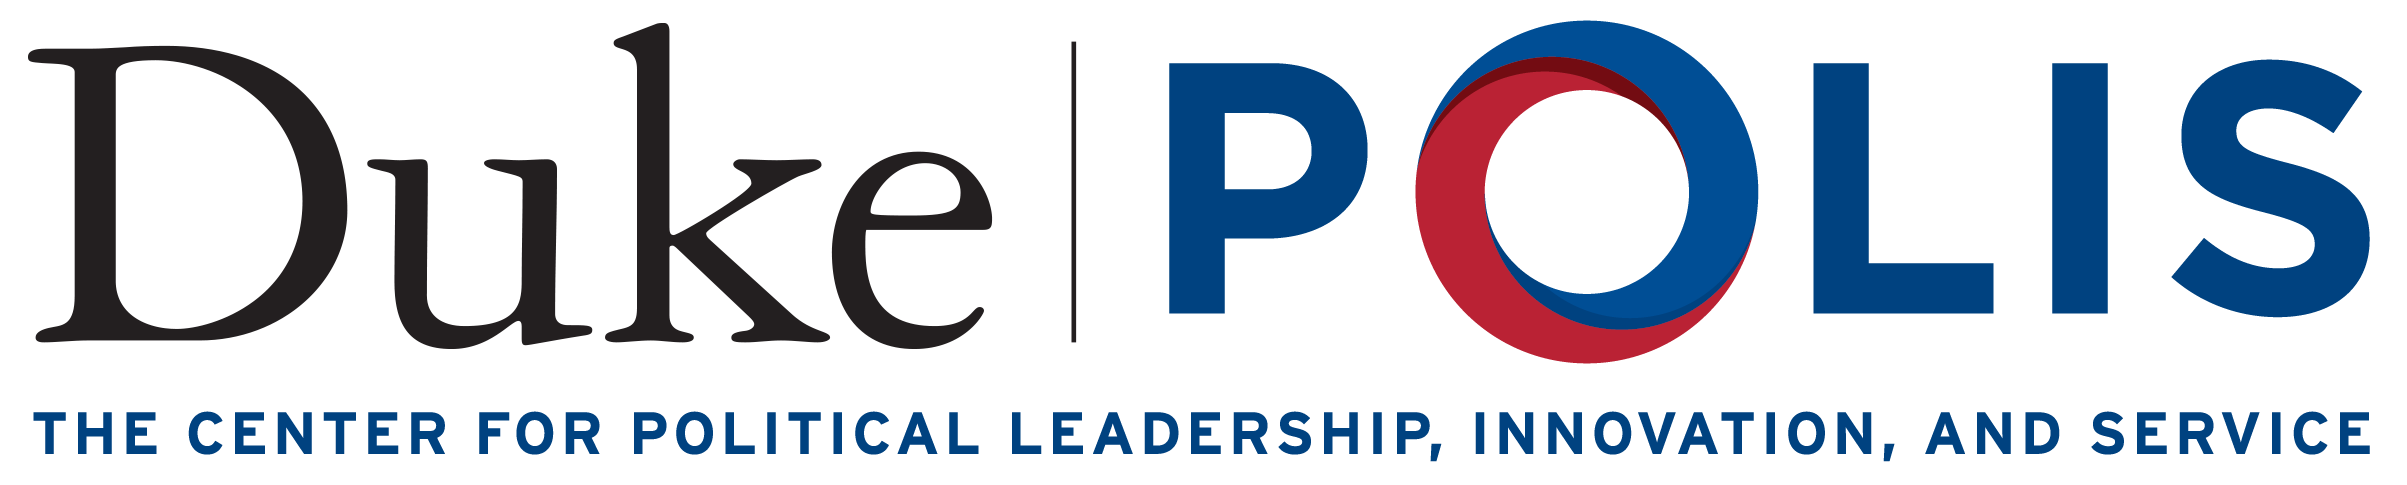 The Center for Political Leadership, Innovation, and Service